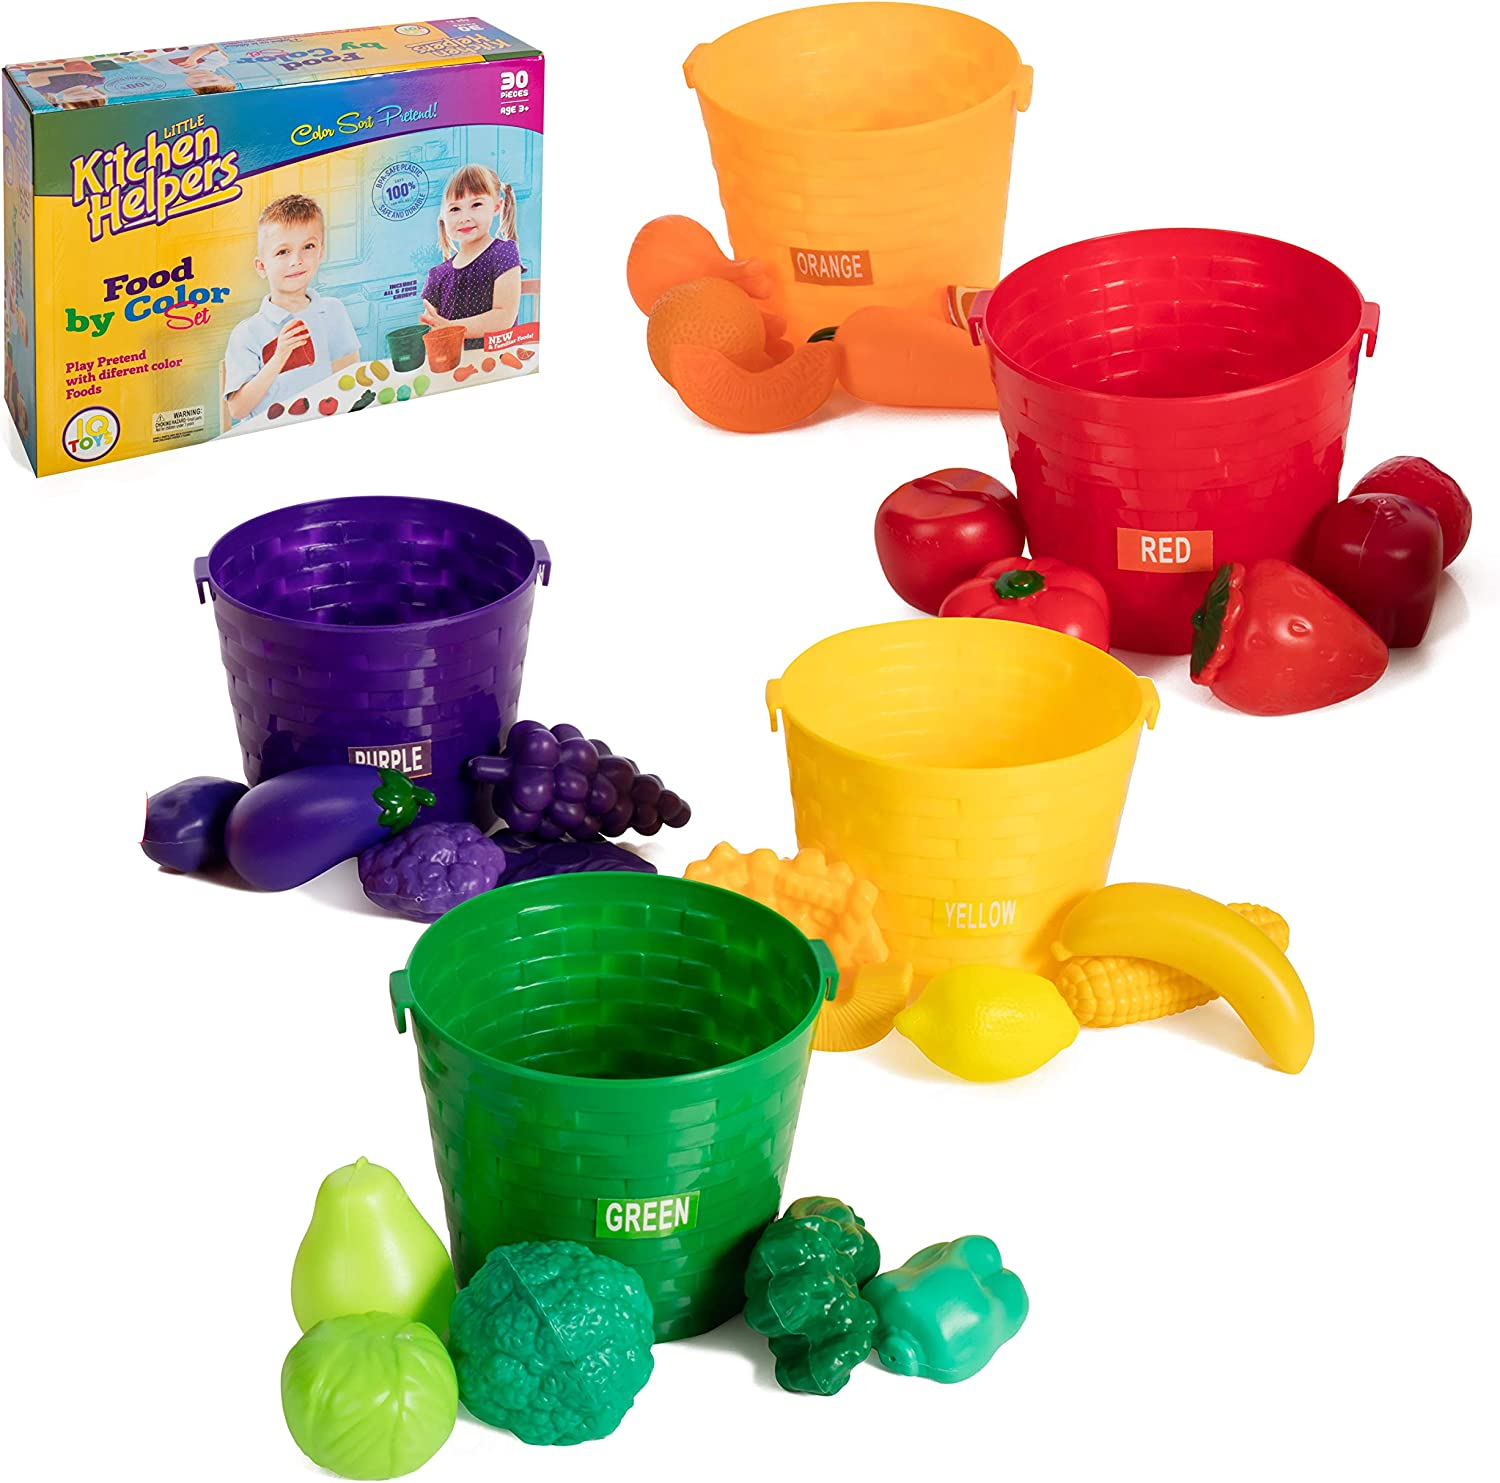 IQ Toys Farmer's Market Color Sorting Set, Play Food with 5 Color Coded Buckets. Complete Pretend Play Fruits and Vegetables Learning Toy Set for Toddler Kids Girls and Boys, 30 Pieces